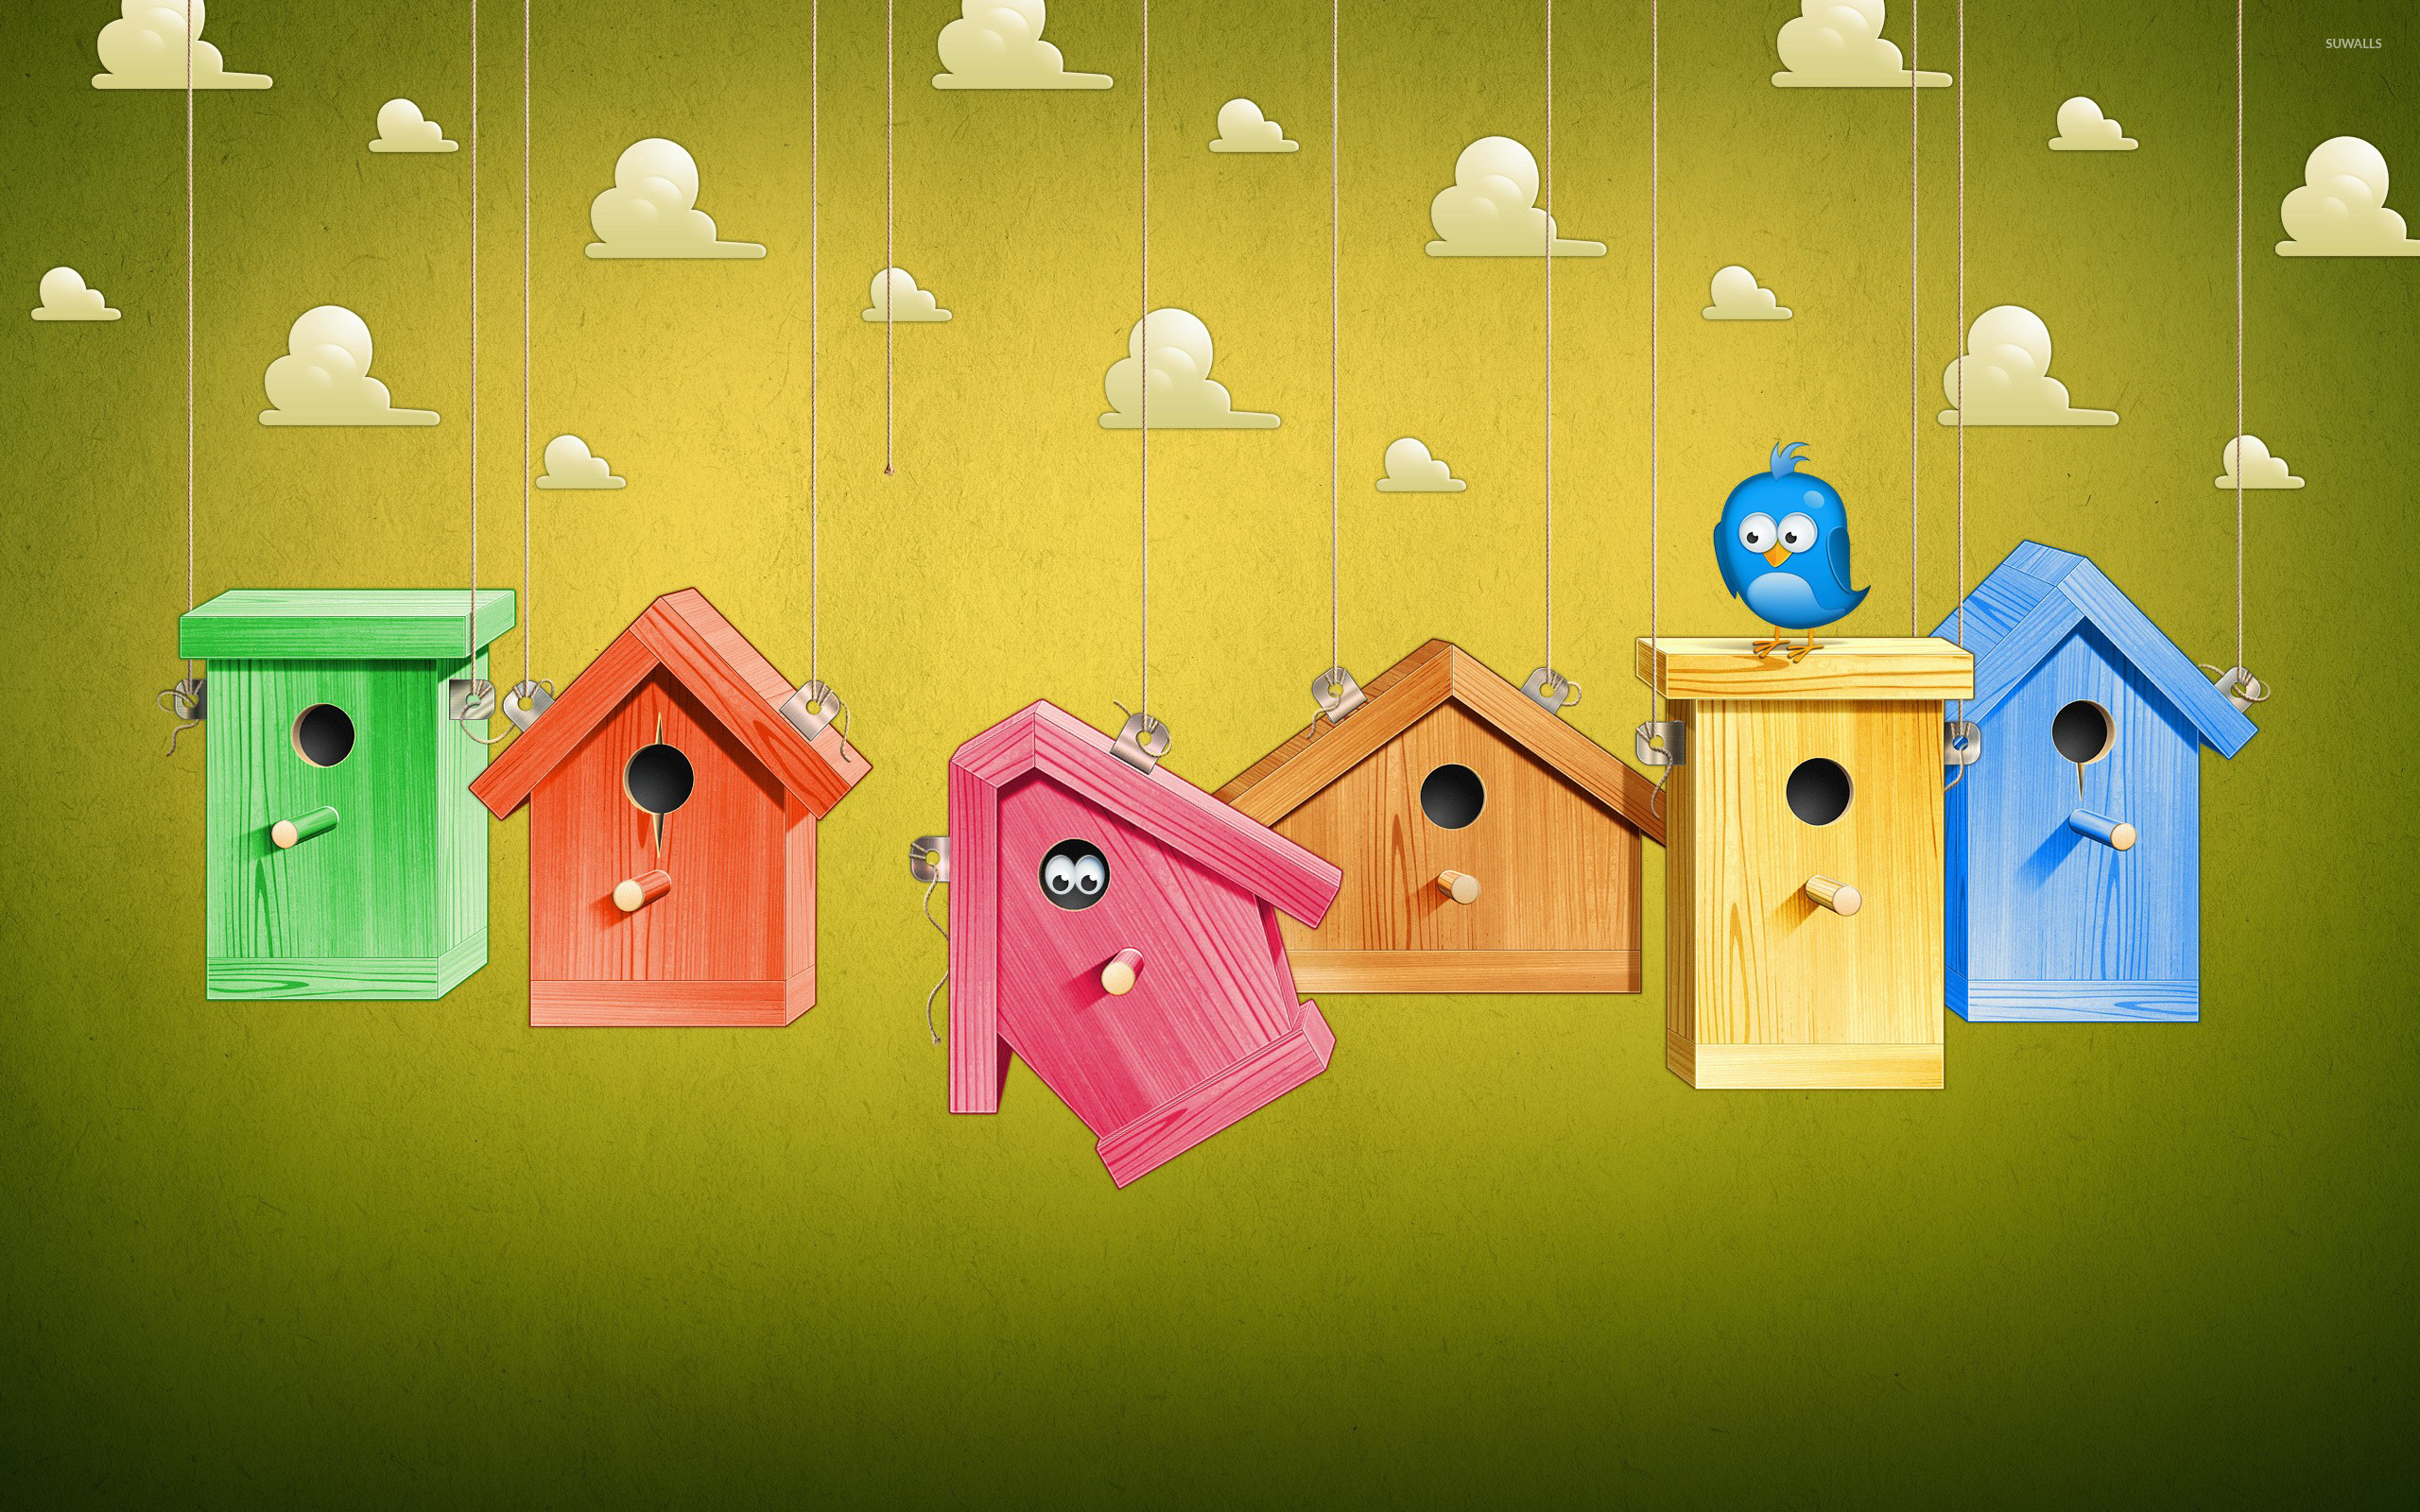 Colorful bird houses wallpaper - Digital Art wallpapers ...